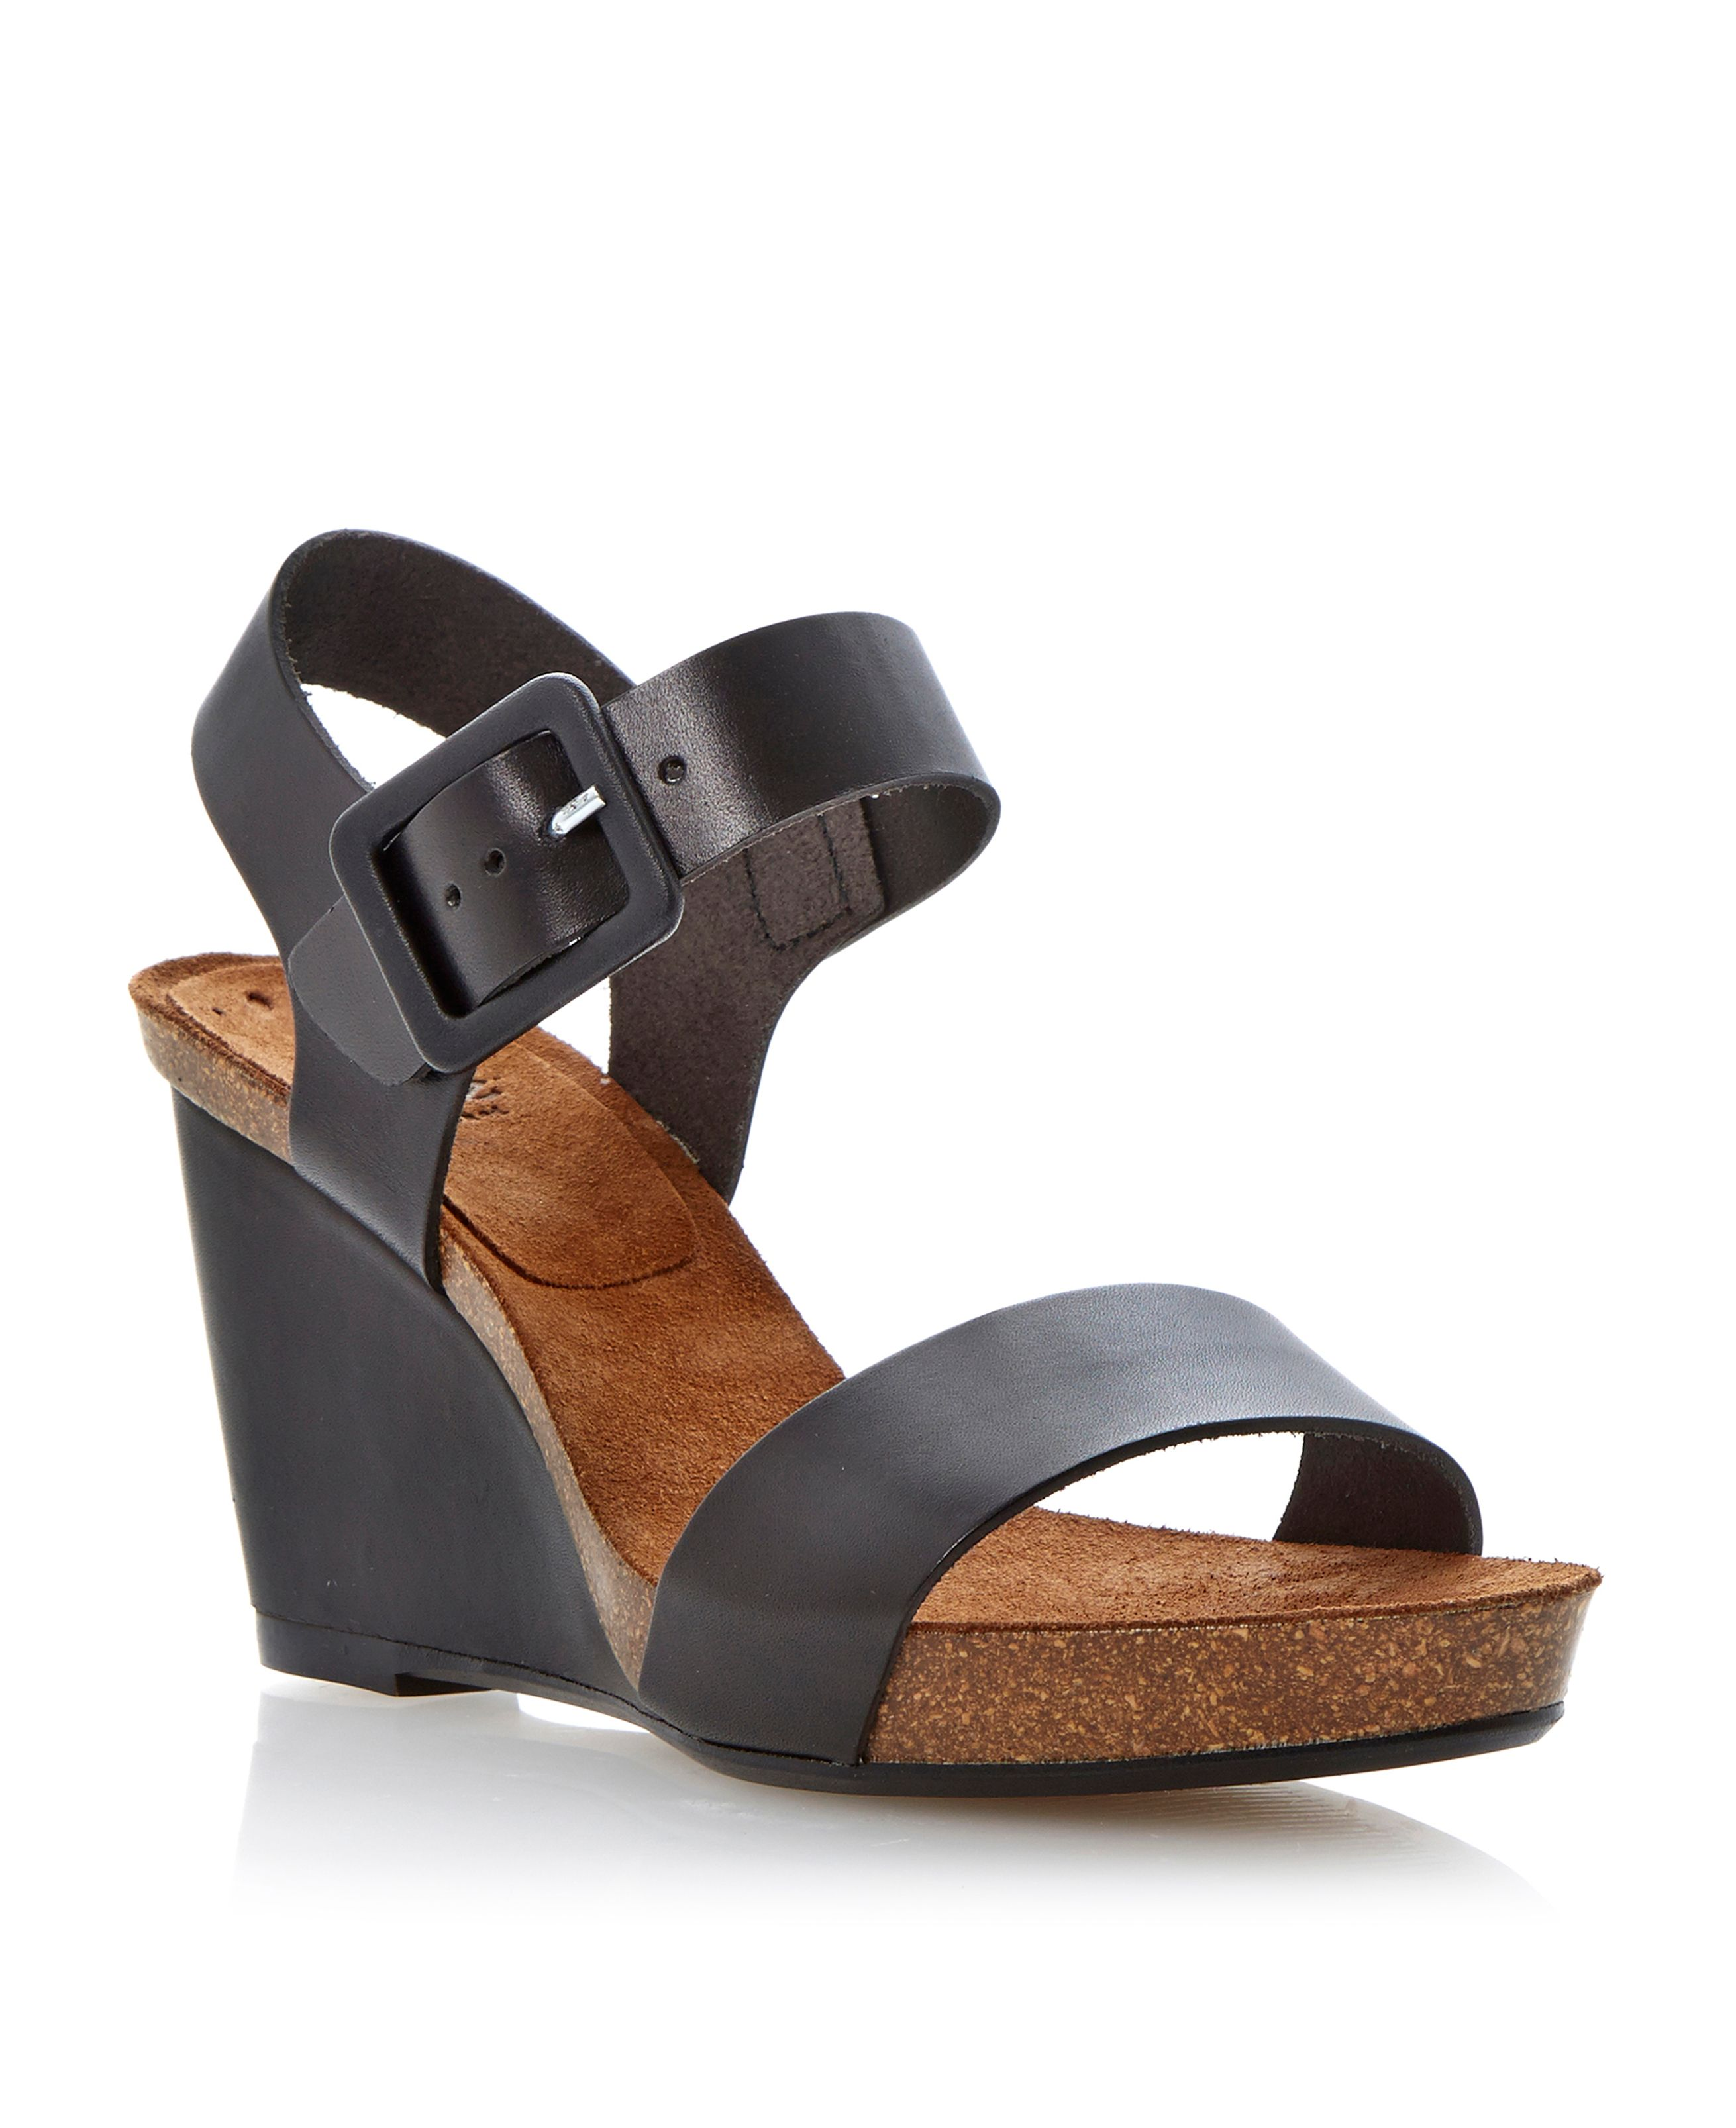 Gina leather cork wedge buckle sandals